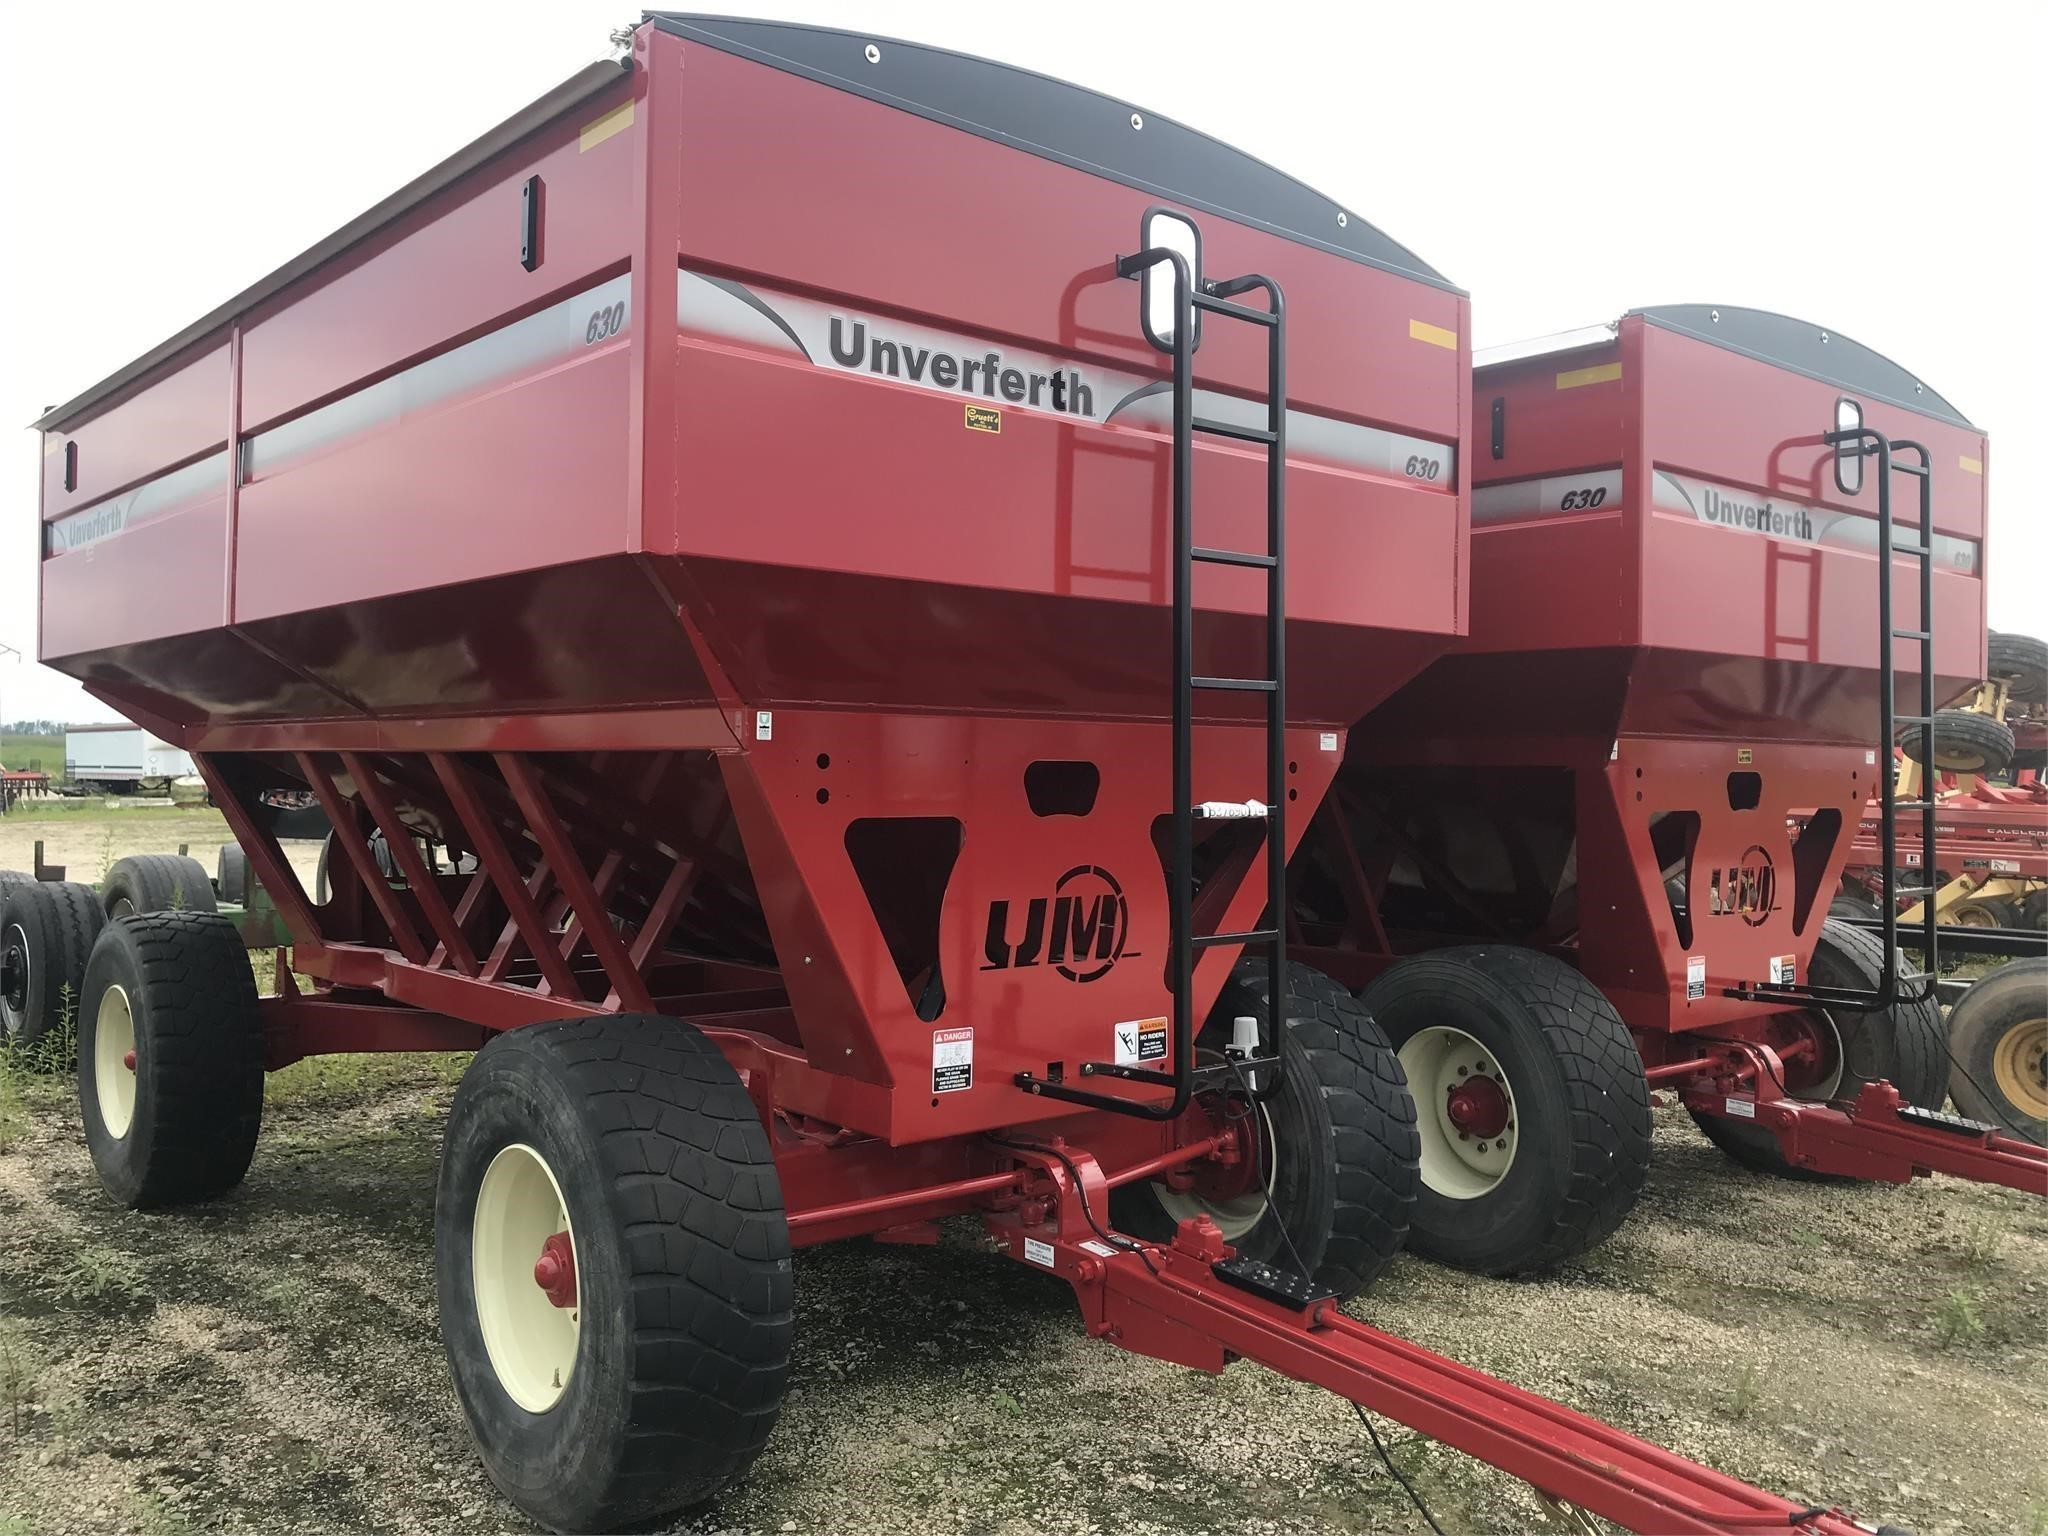 2018 Unverferth 630 Gravity Wagon